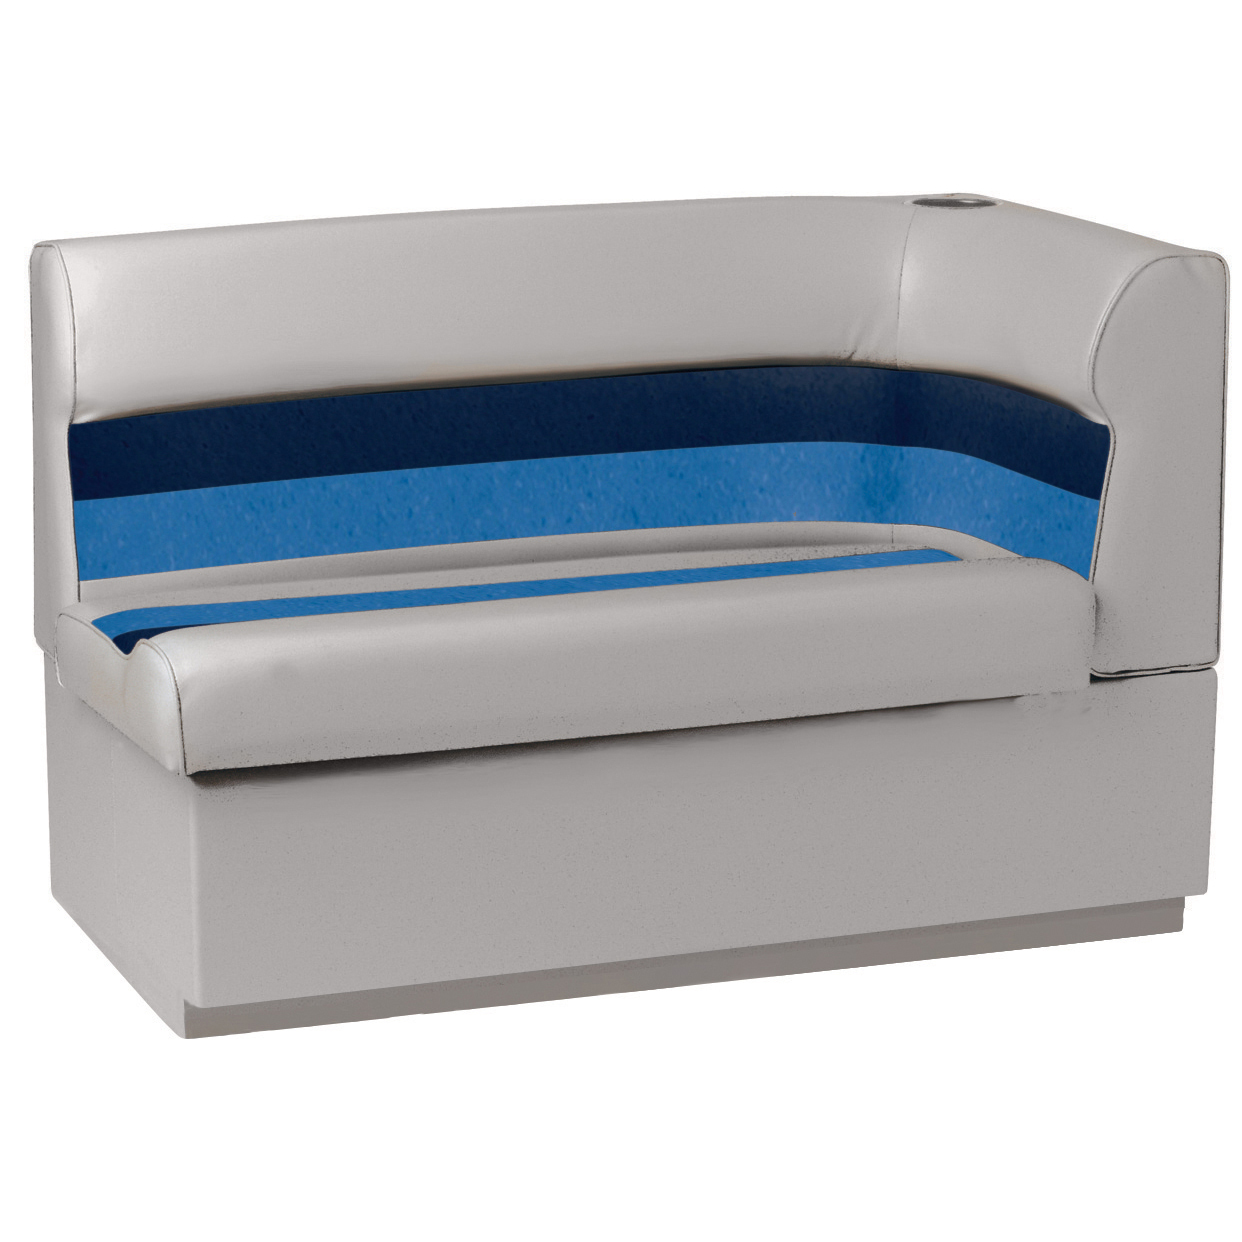 Toonmate Deluxe Pontoon Corner Couch with Toe Kick Base, Left Side, Gray